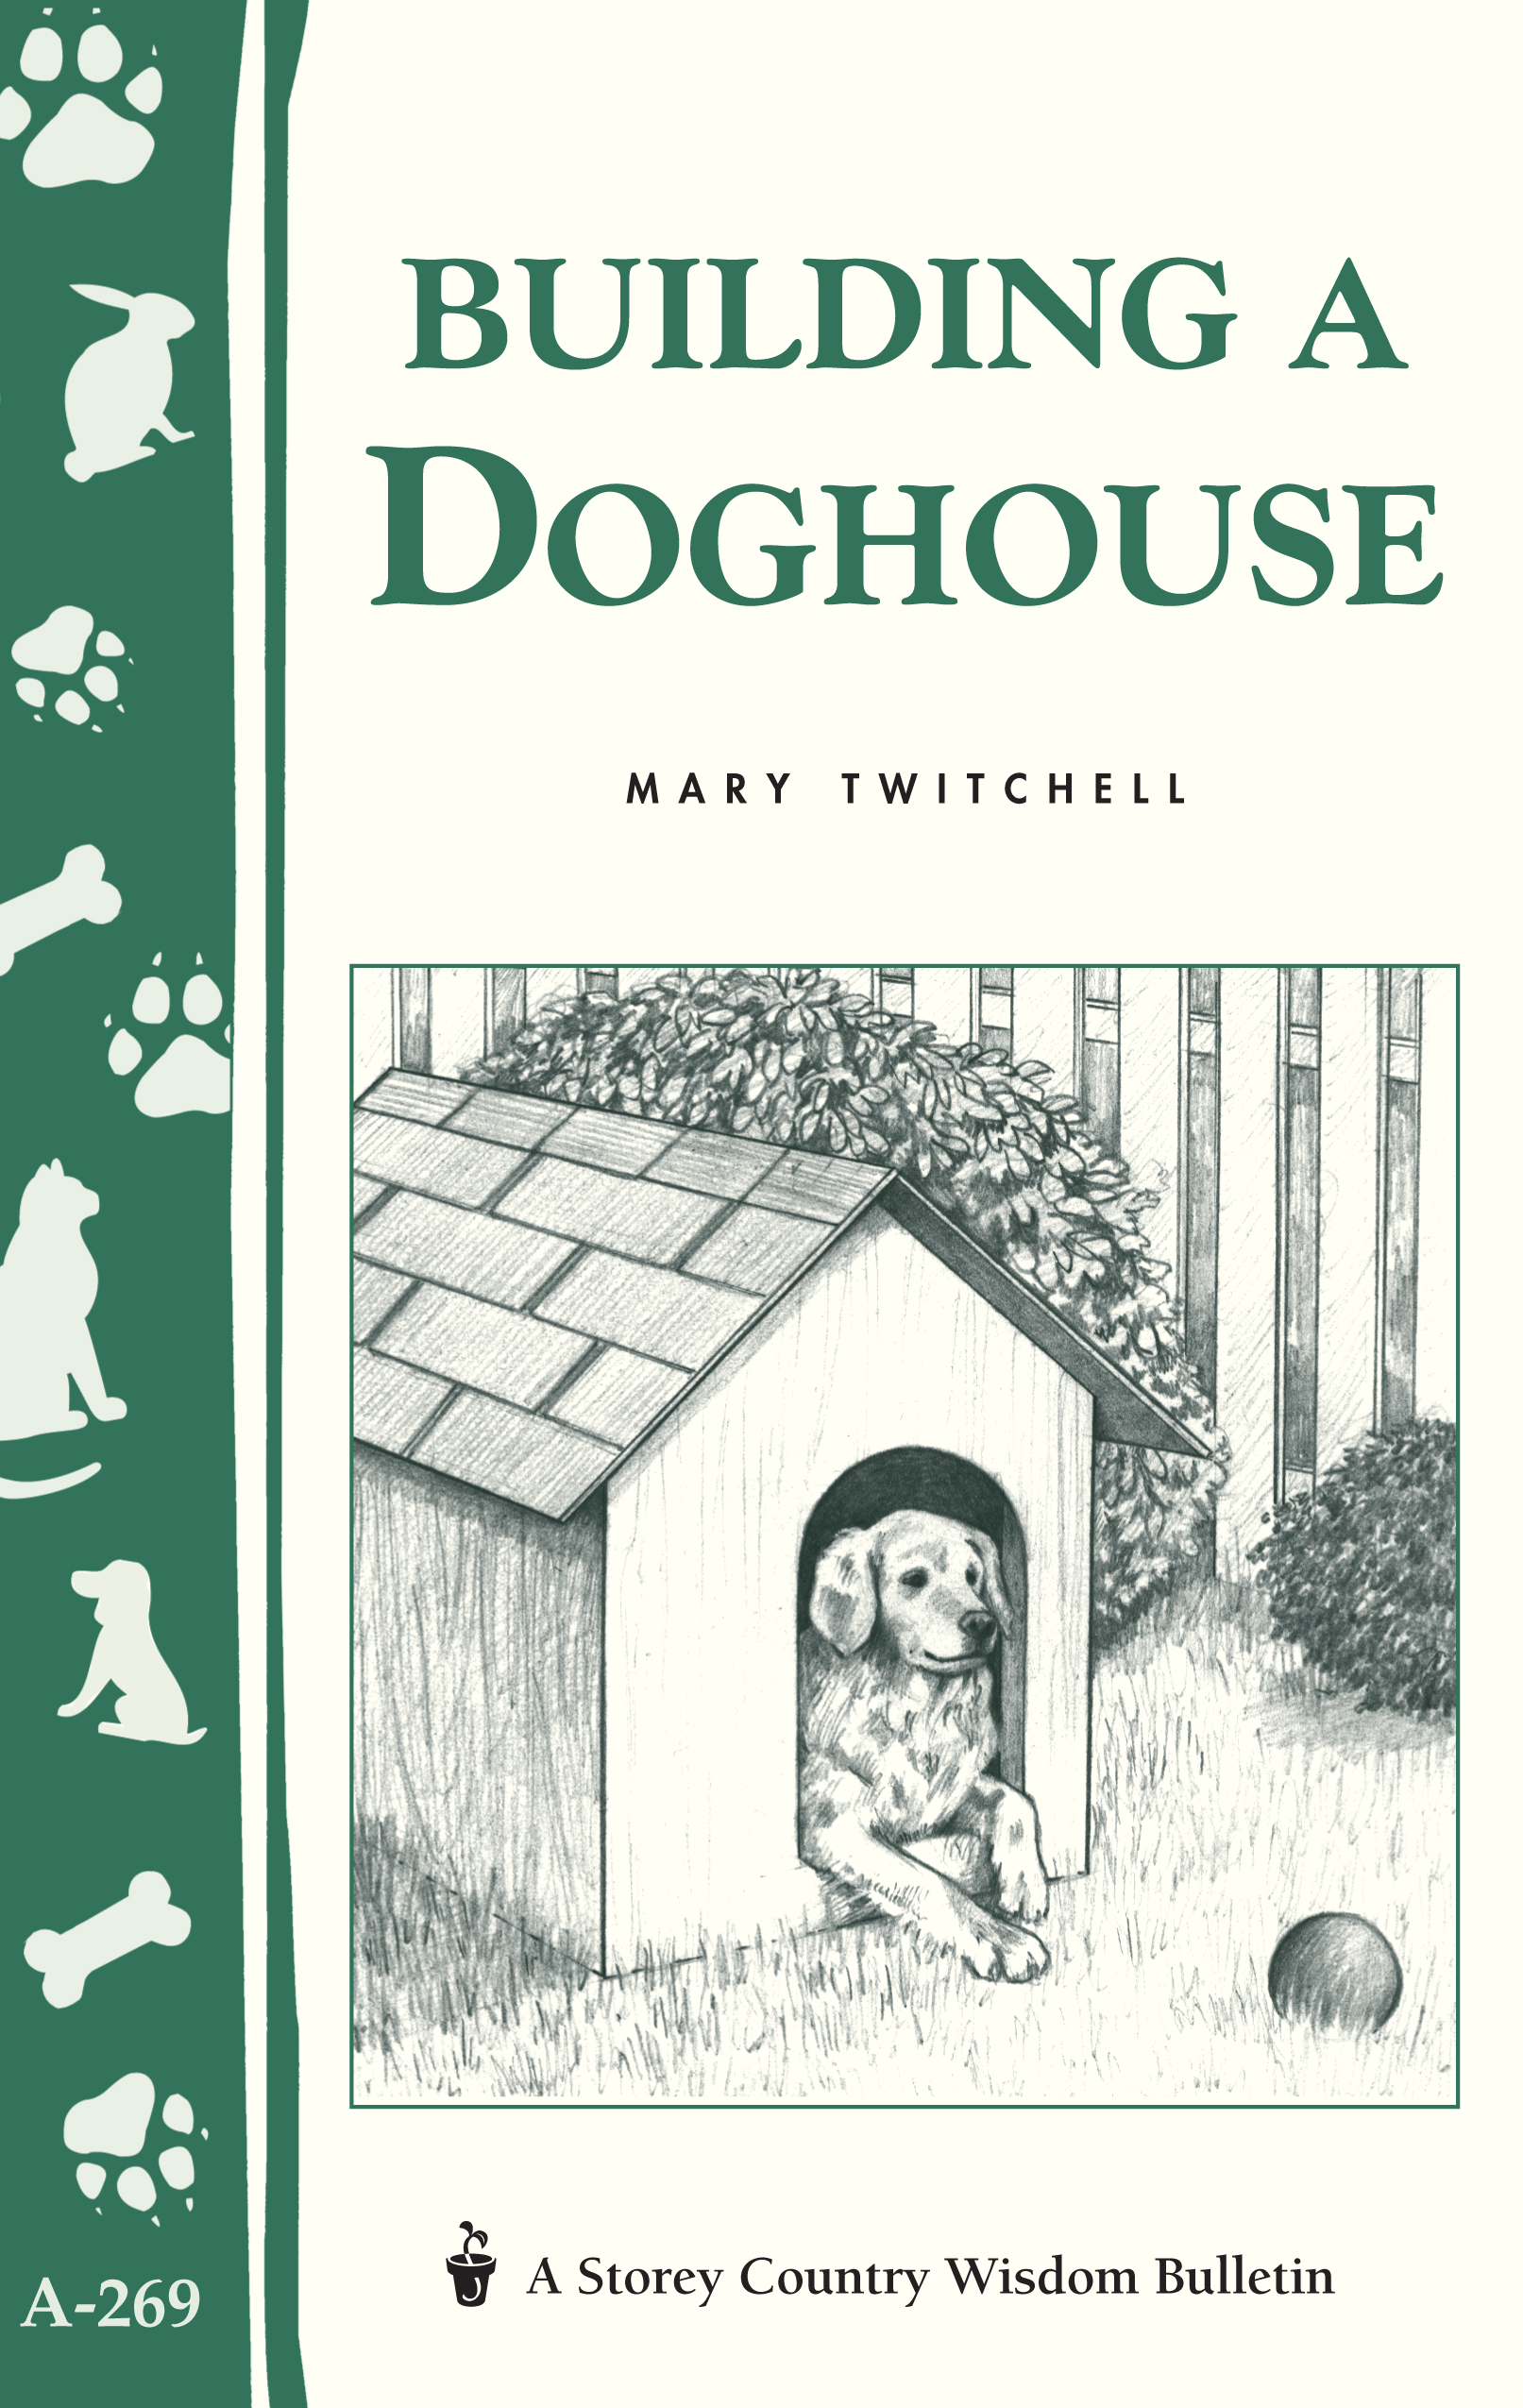 Building a Doghouse (Storey's Country Wisdom Bulletins A-269) - Mary Twitchell